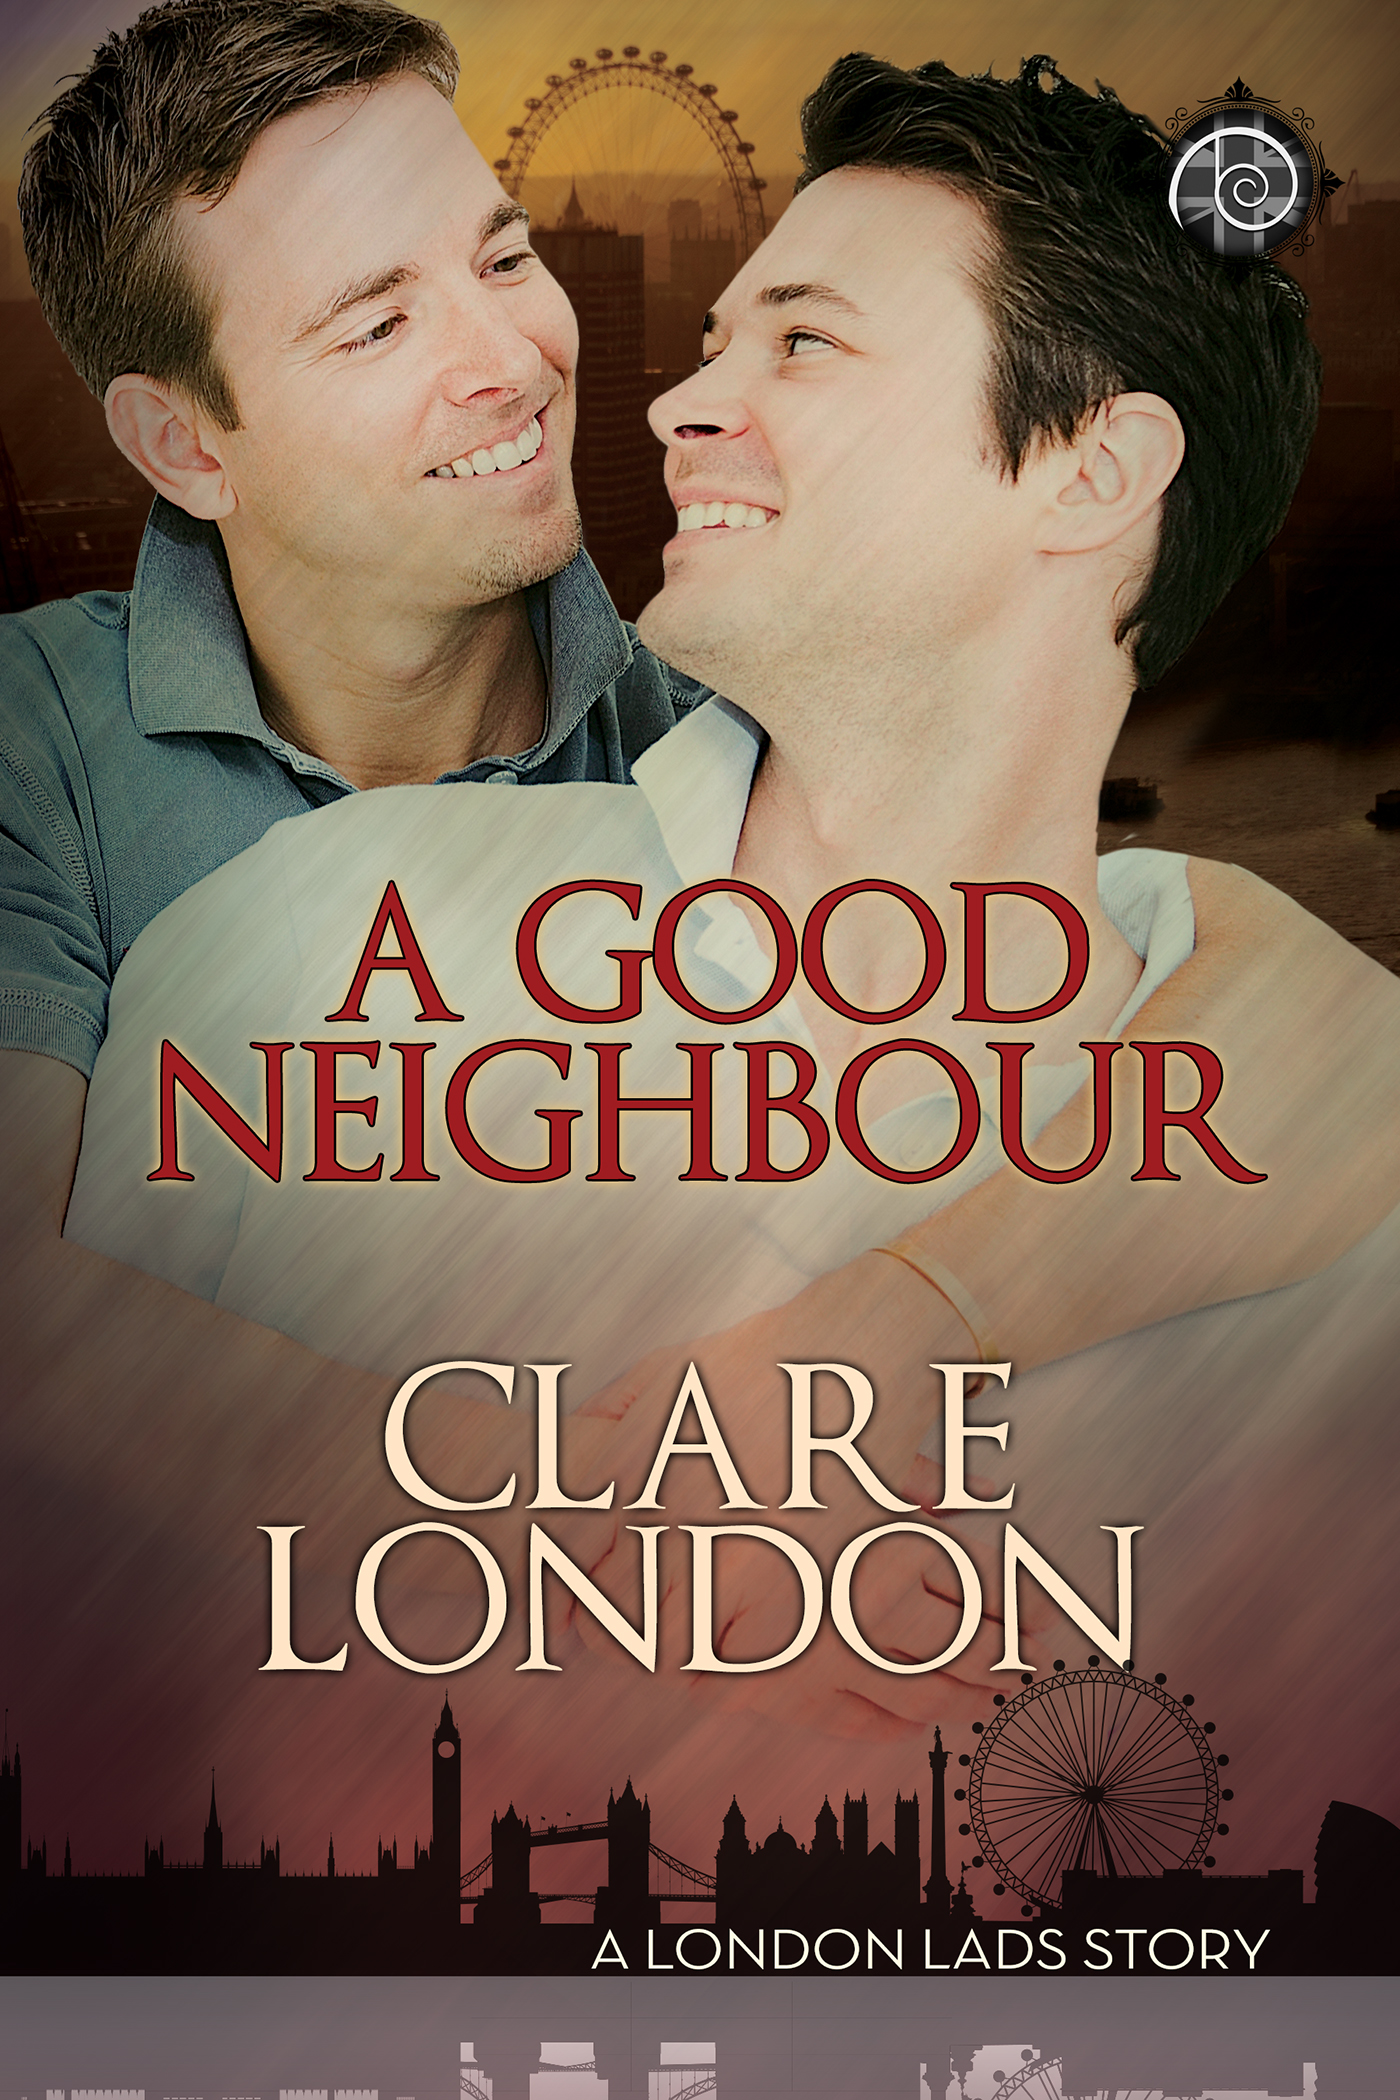 A Good Neighbour